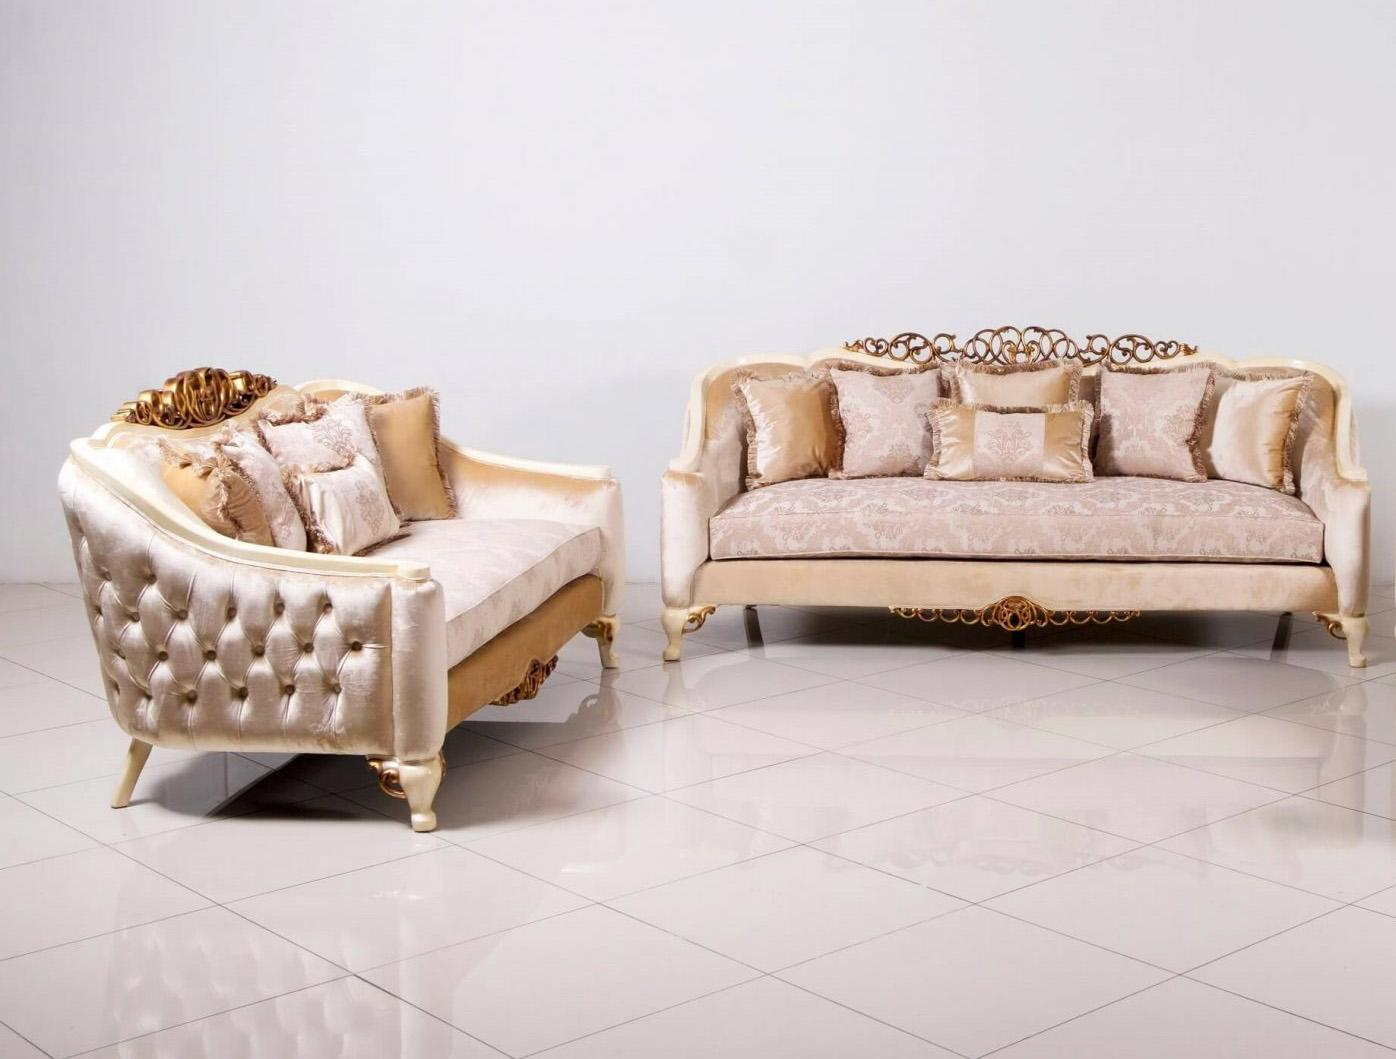 Classic  Traditional Beige  Gold  Antique  Pearl Wood  Solid Hardwood and Fabric Sofa Set EUROPEAN FURNITURE 45350-S-Set-2